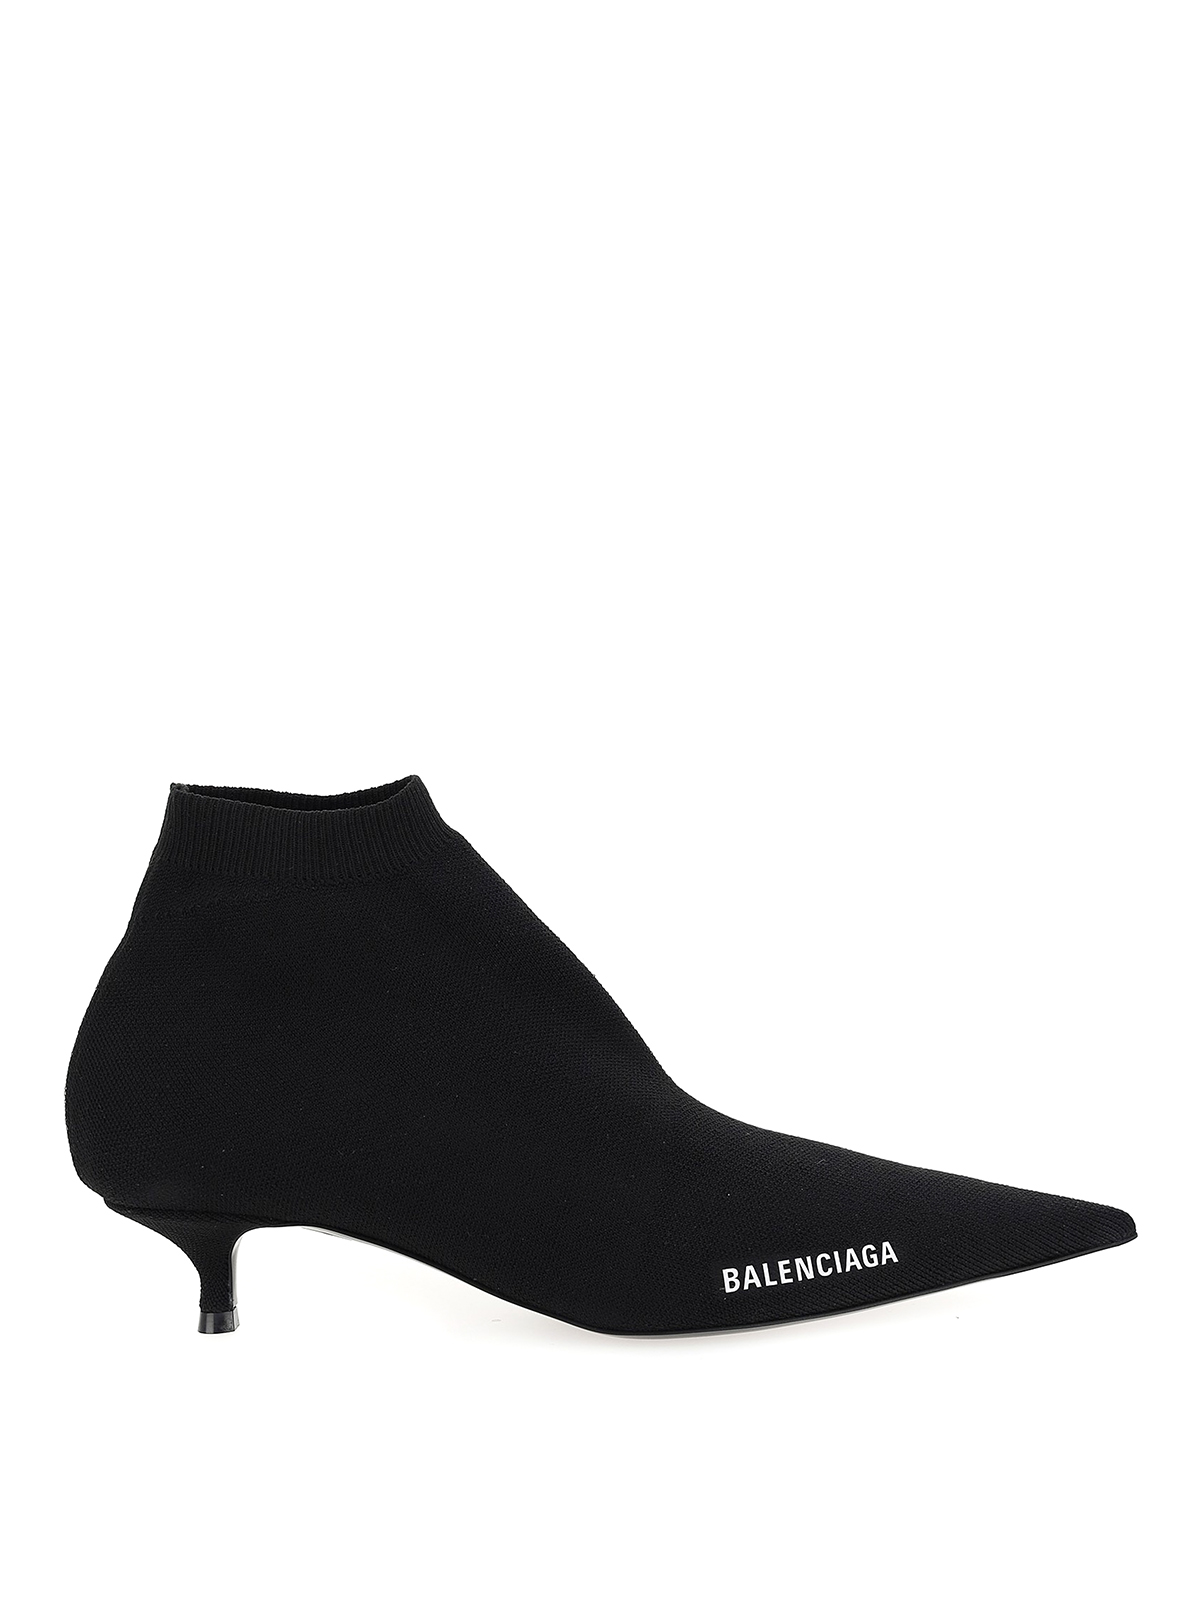 Balenciaga - Stretch knitted booties